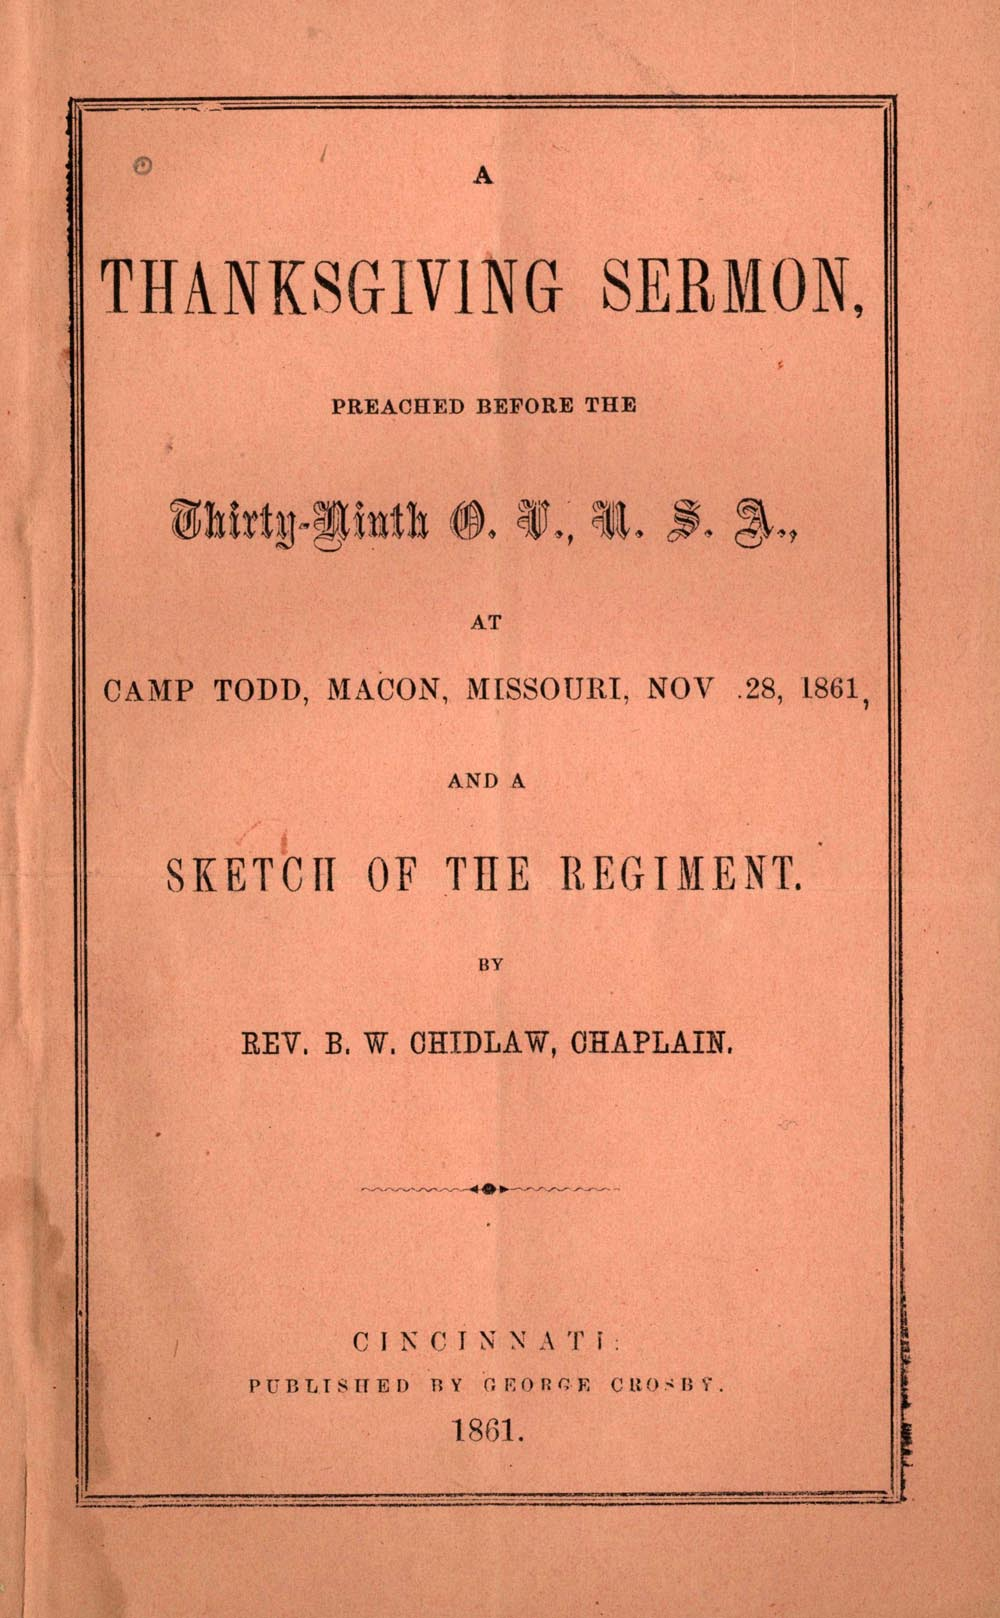 Cover of pamphlet sermon by B. W. A. Chidlaw, A Thanksgiving Sermon Preached before the Thirty-Ninth O. V., U. S. A., at Camp Todd, Macon, Missouri